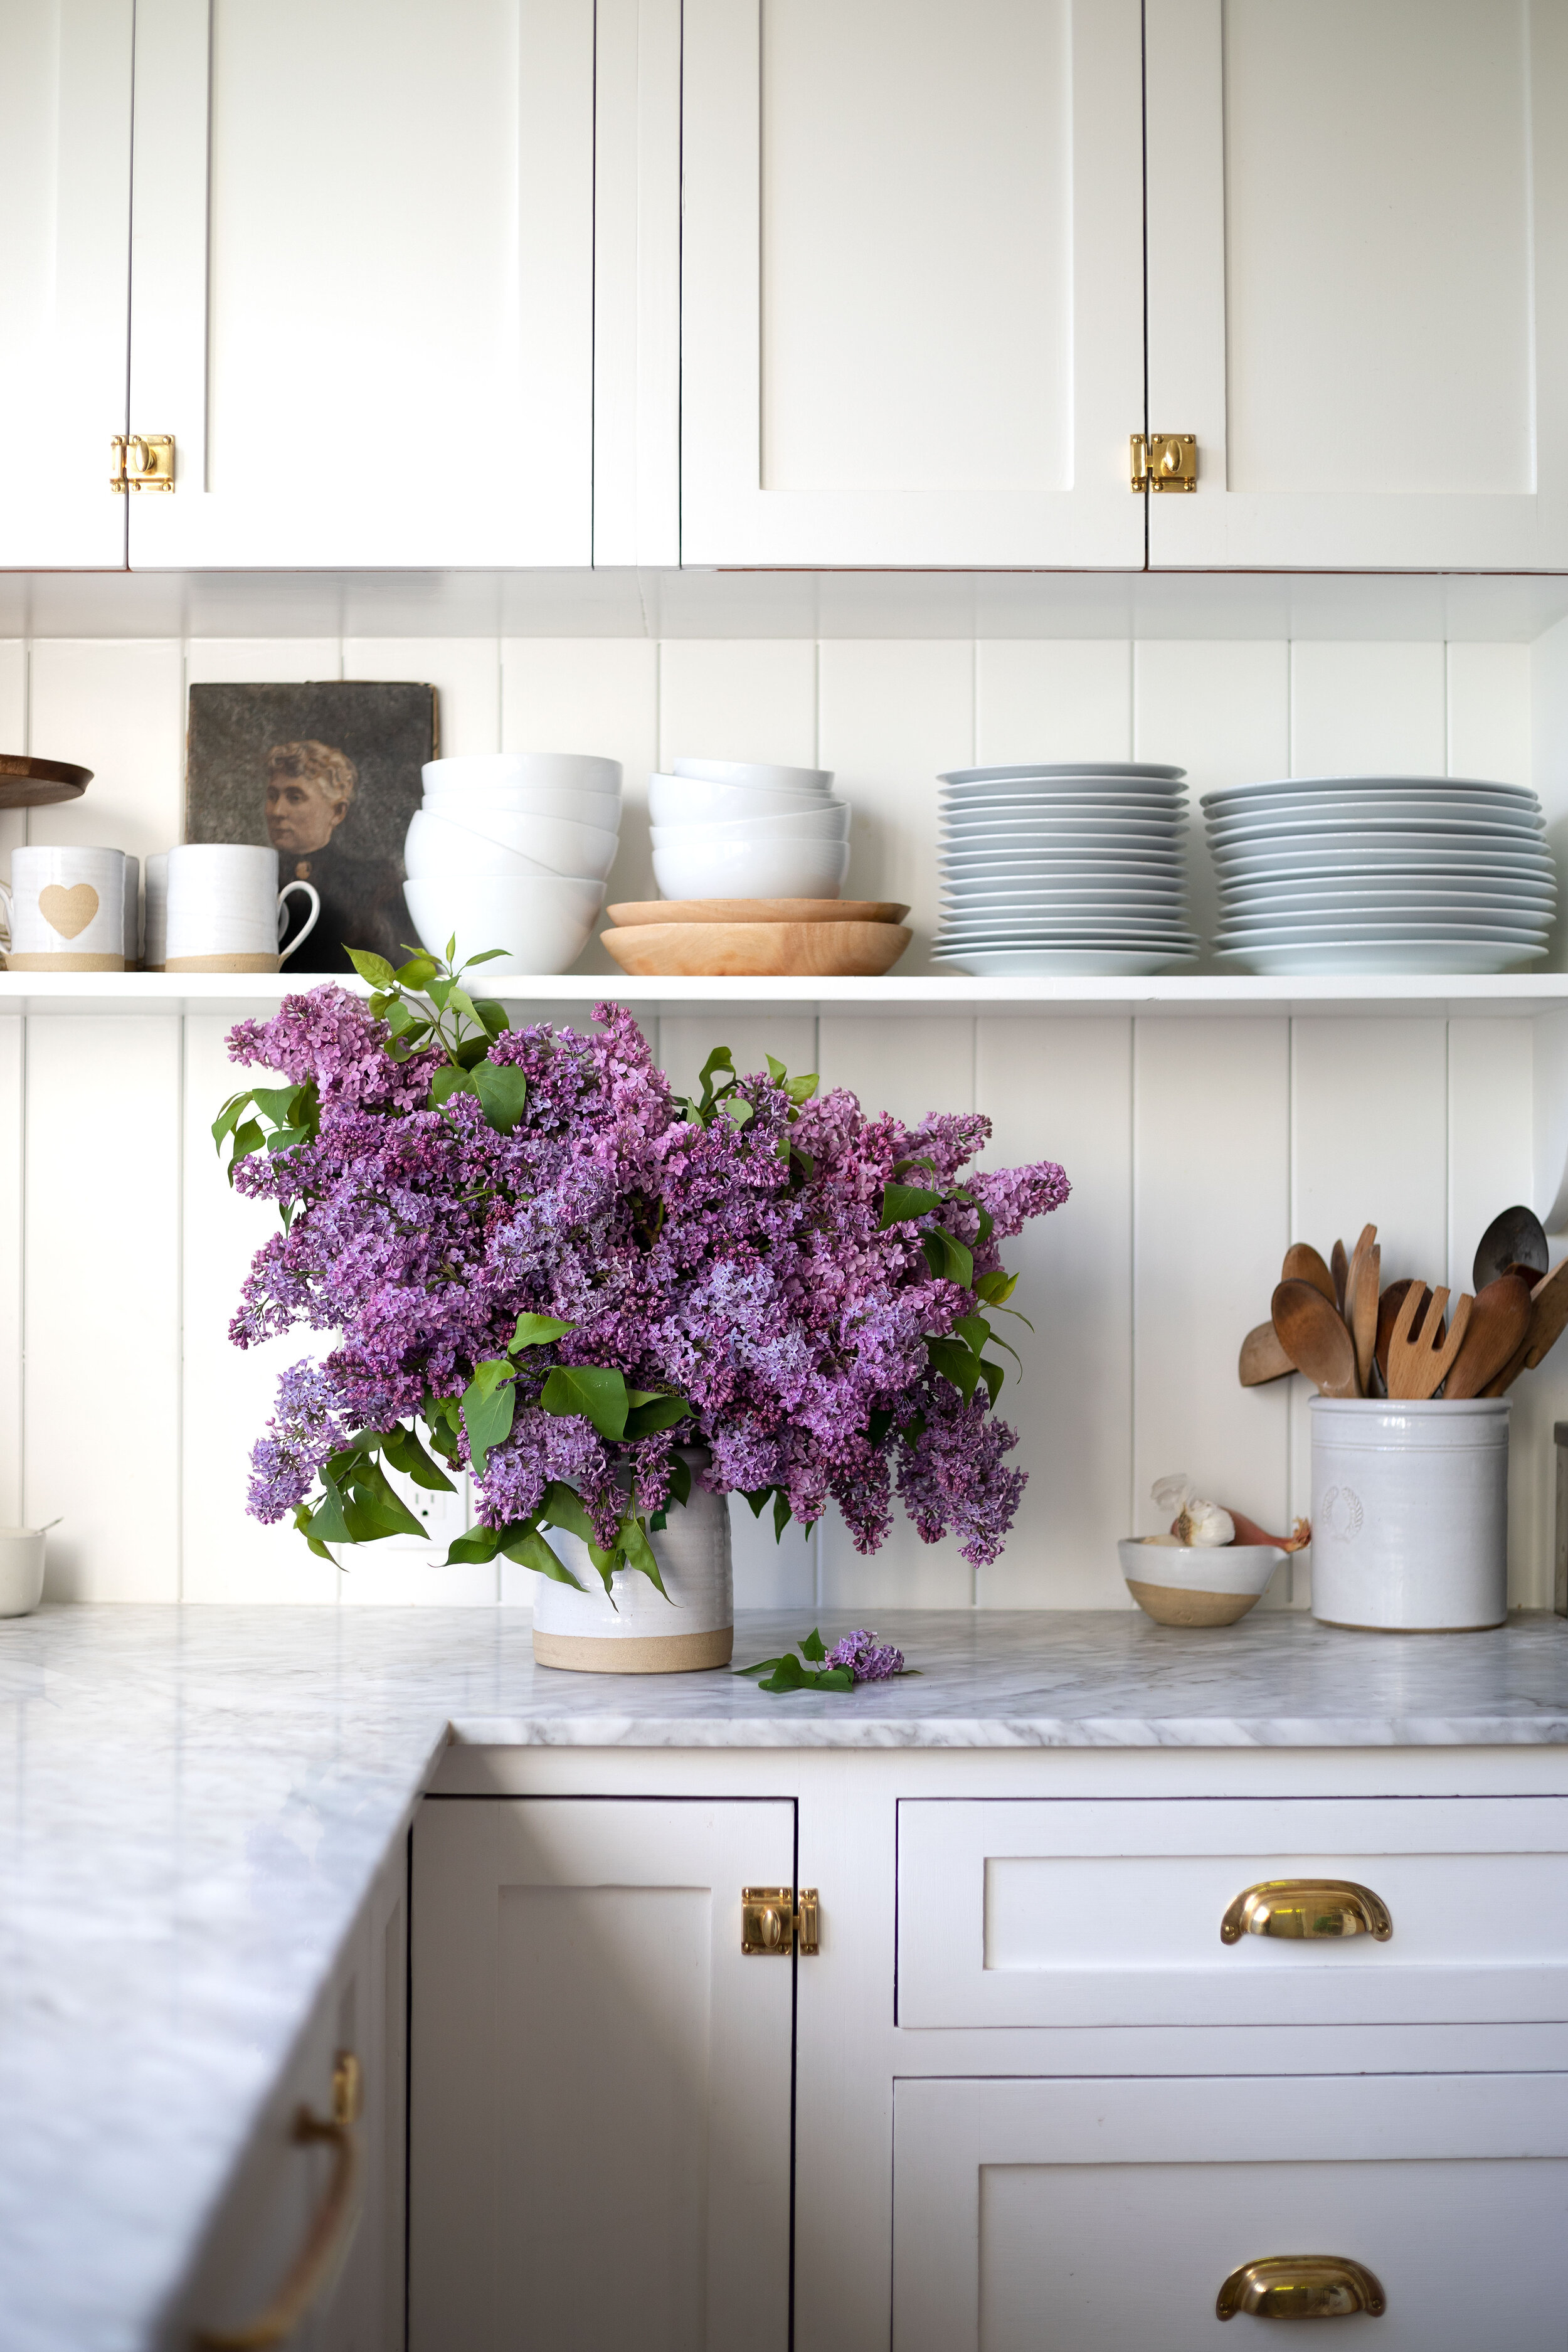 How To Arrange An Overflowing Bouquet Of Lilacs Keep Them From Wilting The Grit And Polish